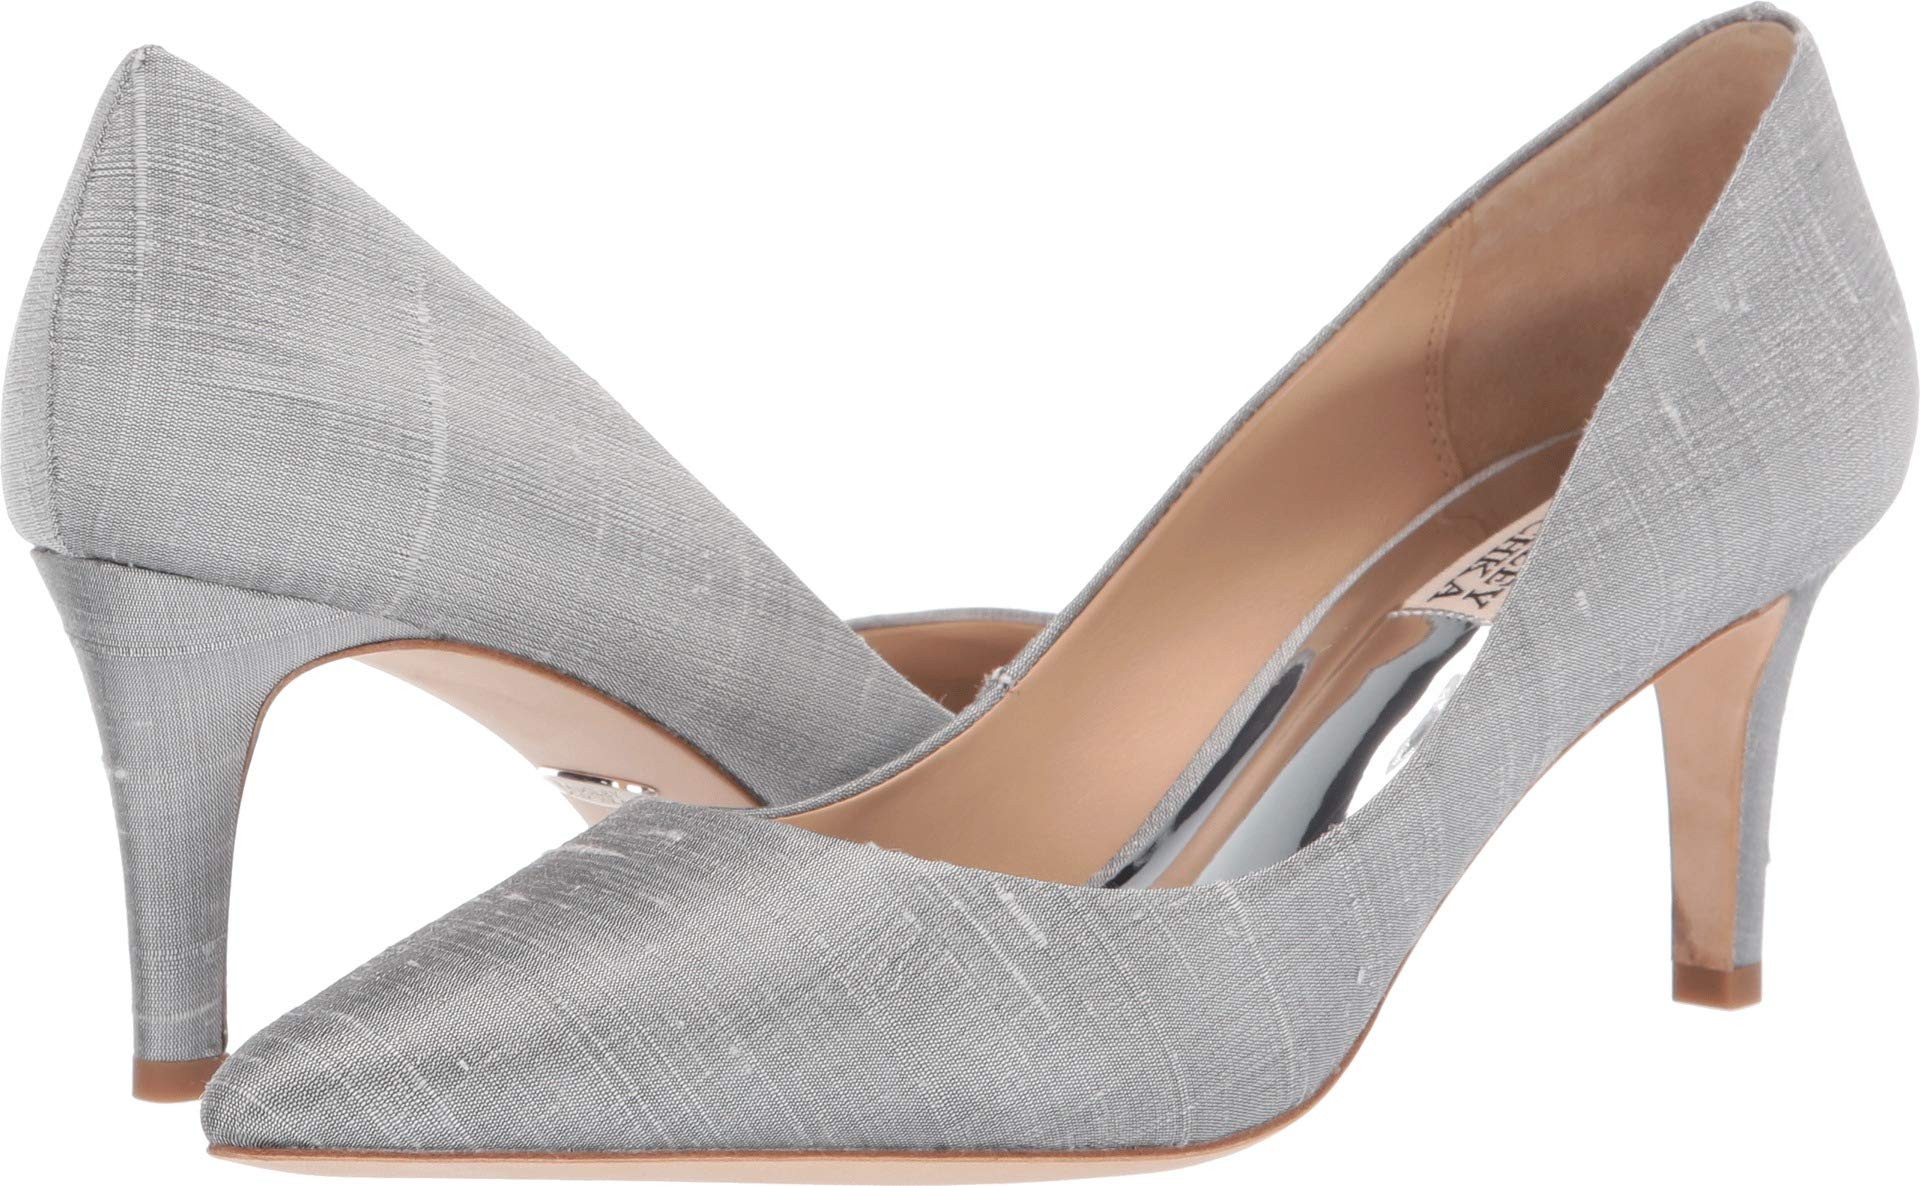 Badgley Mischka Women's Lana Pump, Silver Silk, 6.5 M US by Badgley Mischka